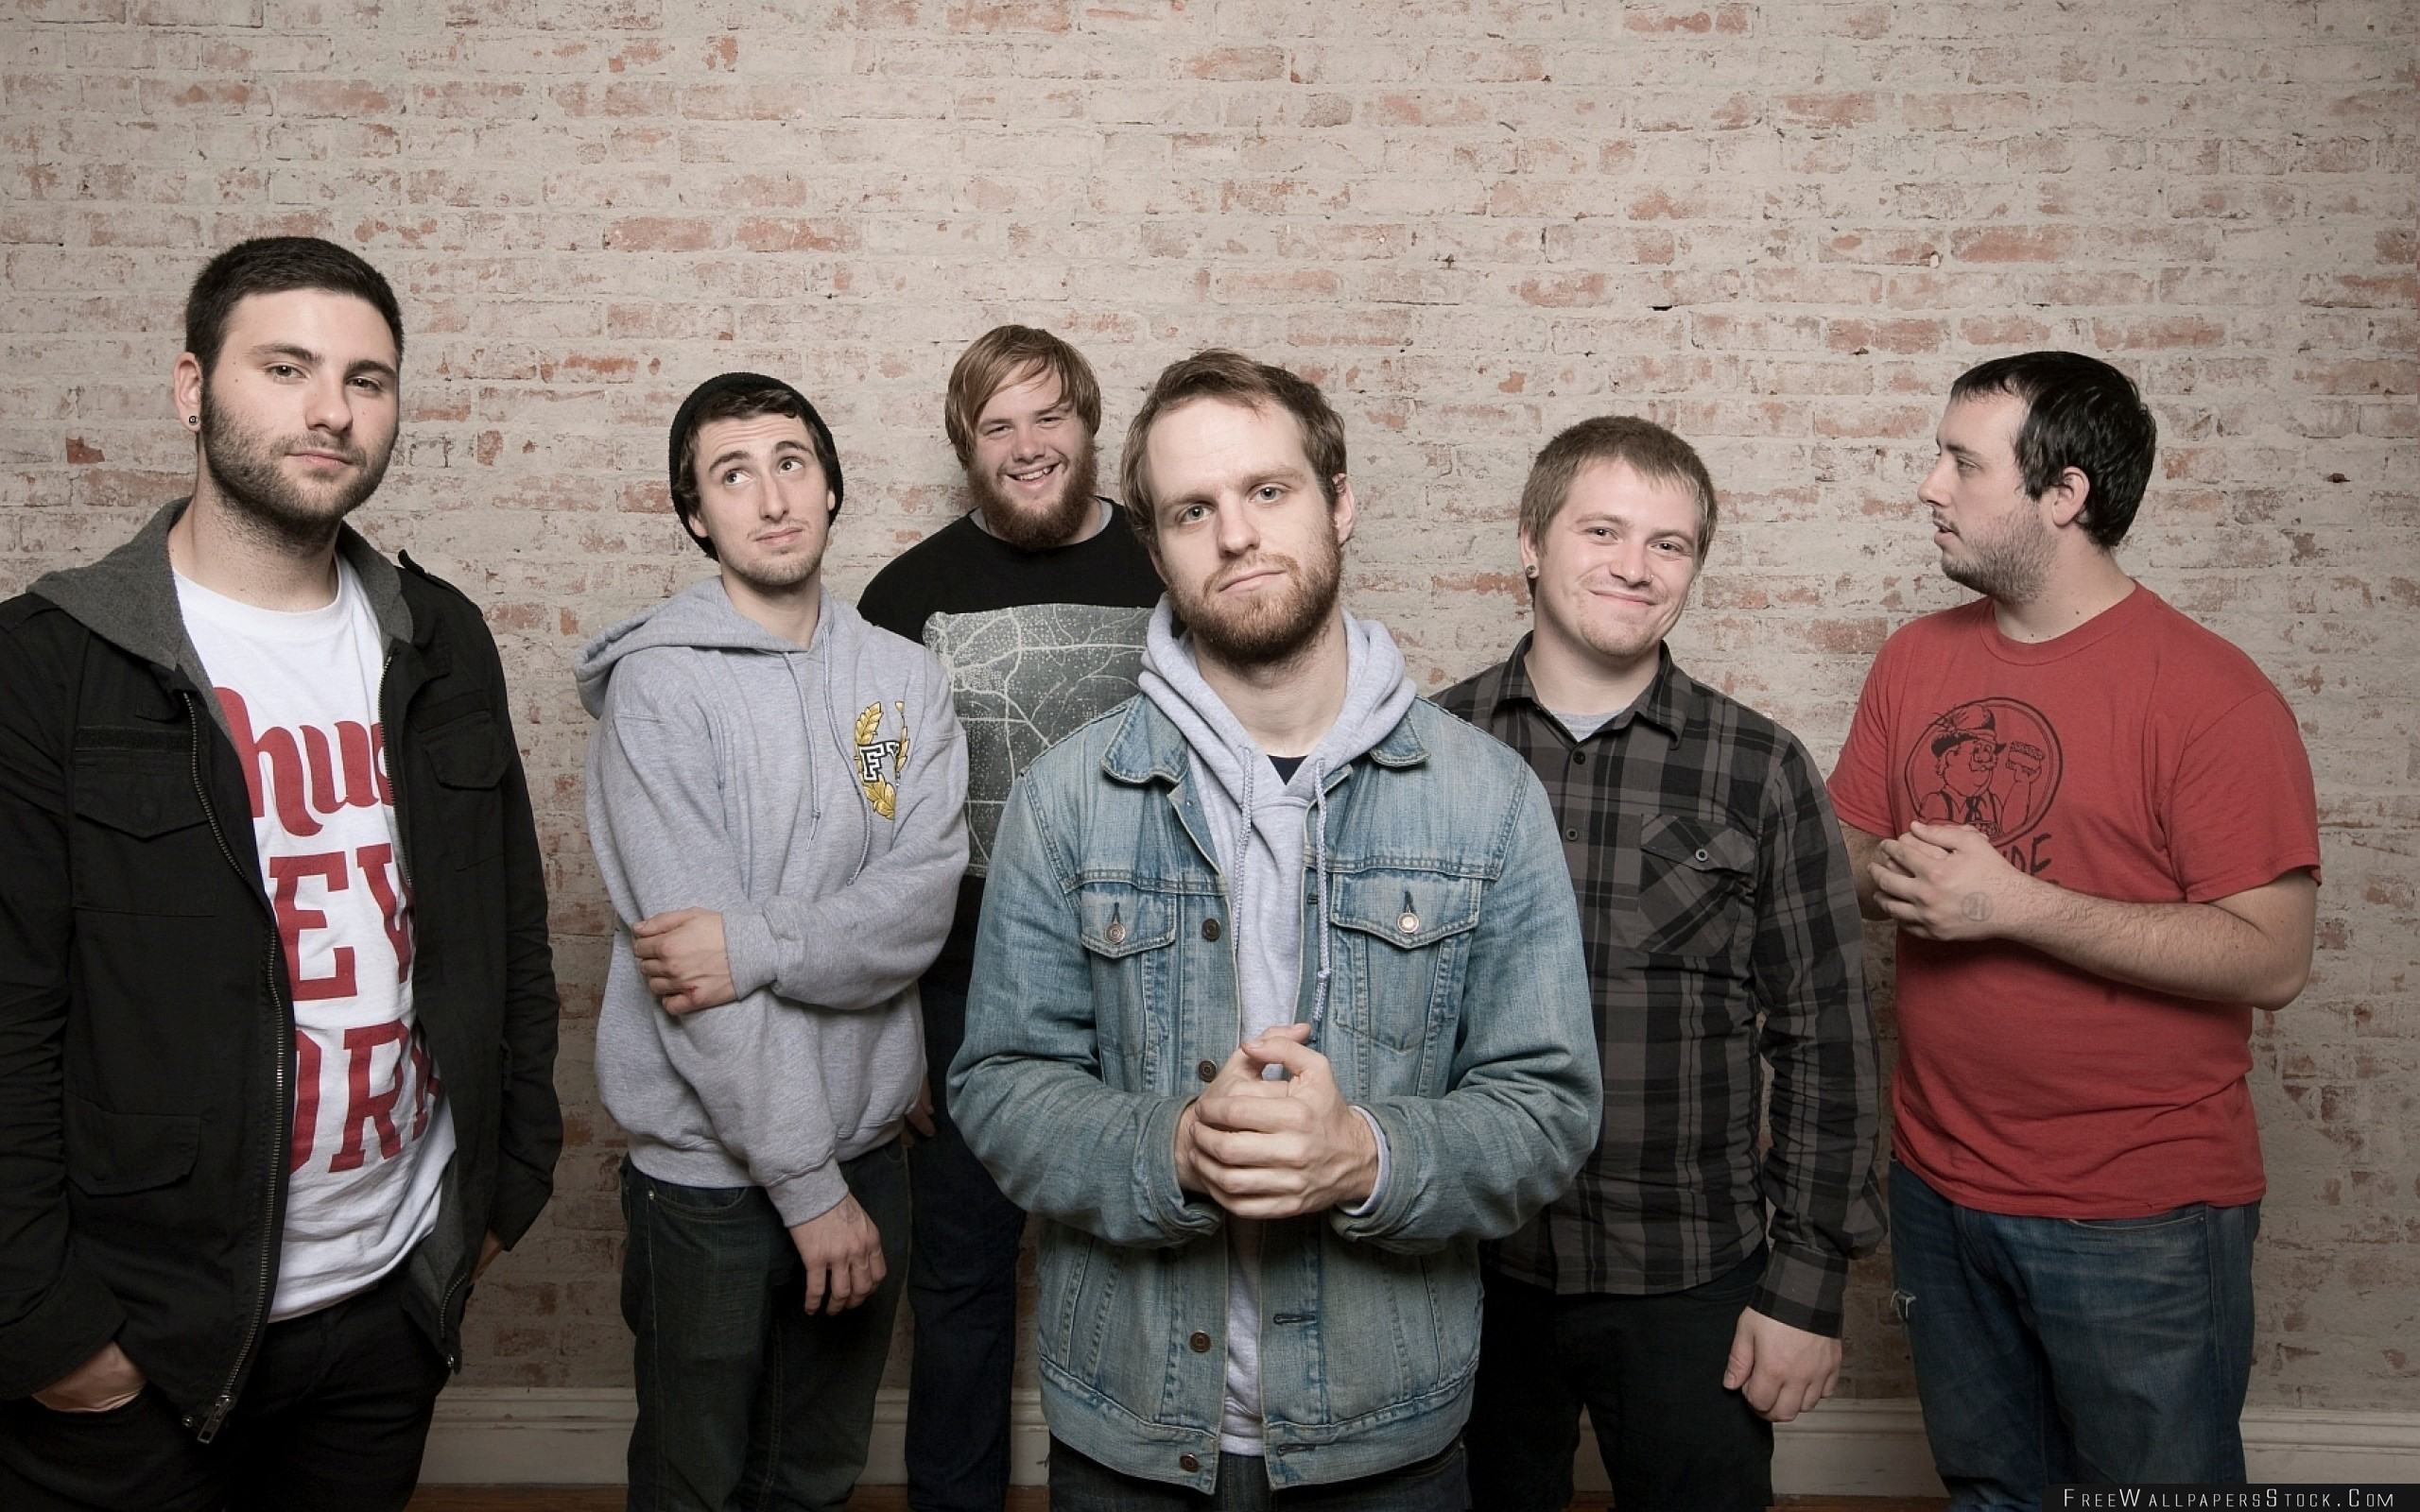 Download Free Wallpaper The Wonder Years Band Wall Clothes Bristle